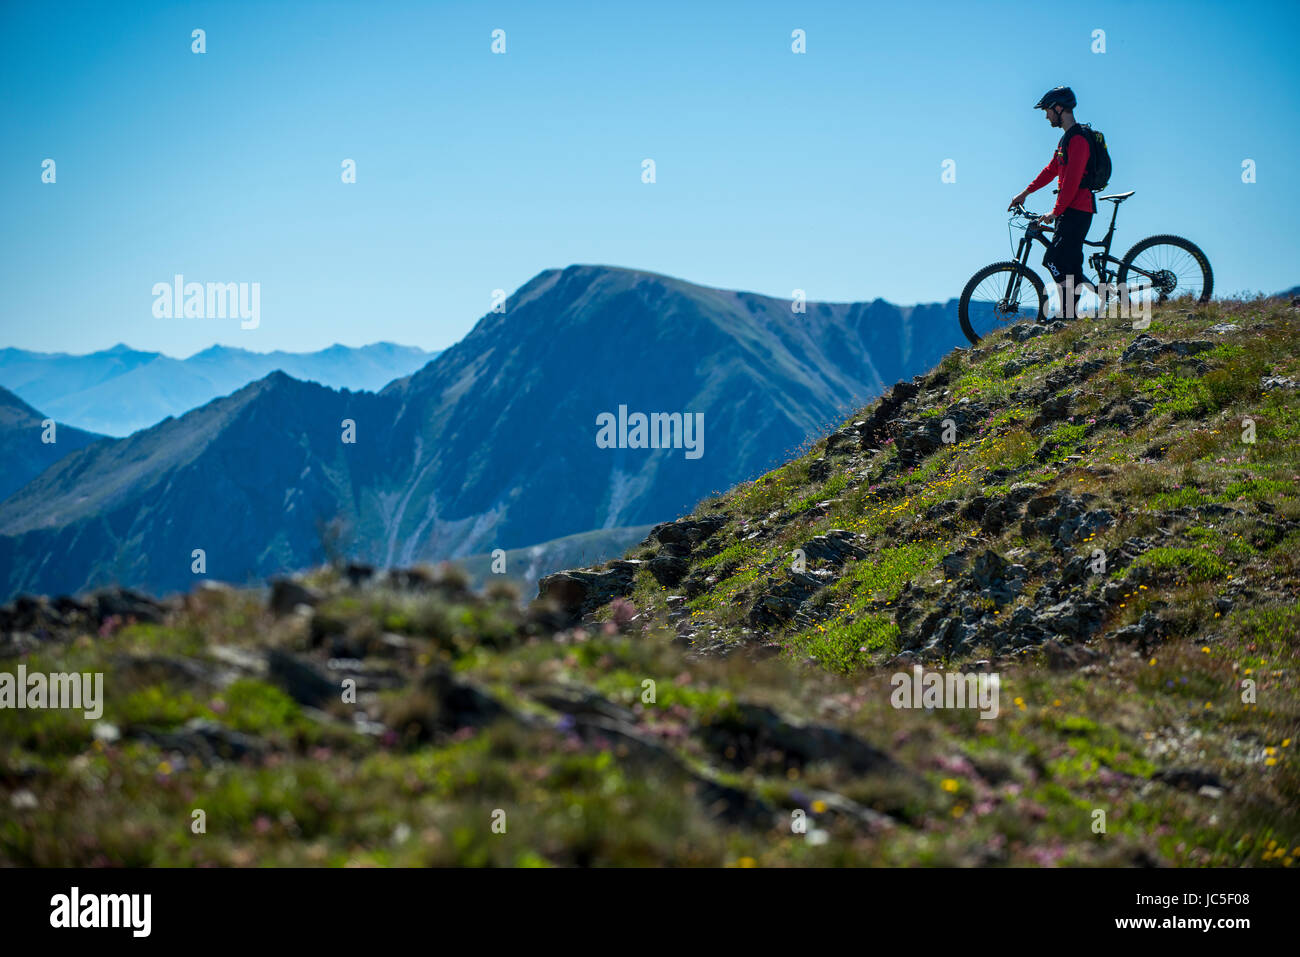 A mountain biker rides along a mountain ridge in Andorra in the Pyrenees. - Stock Image